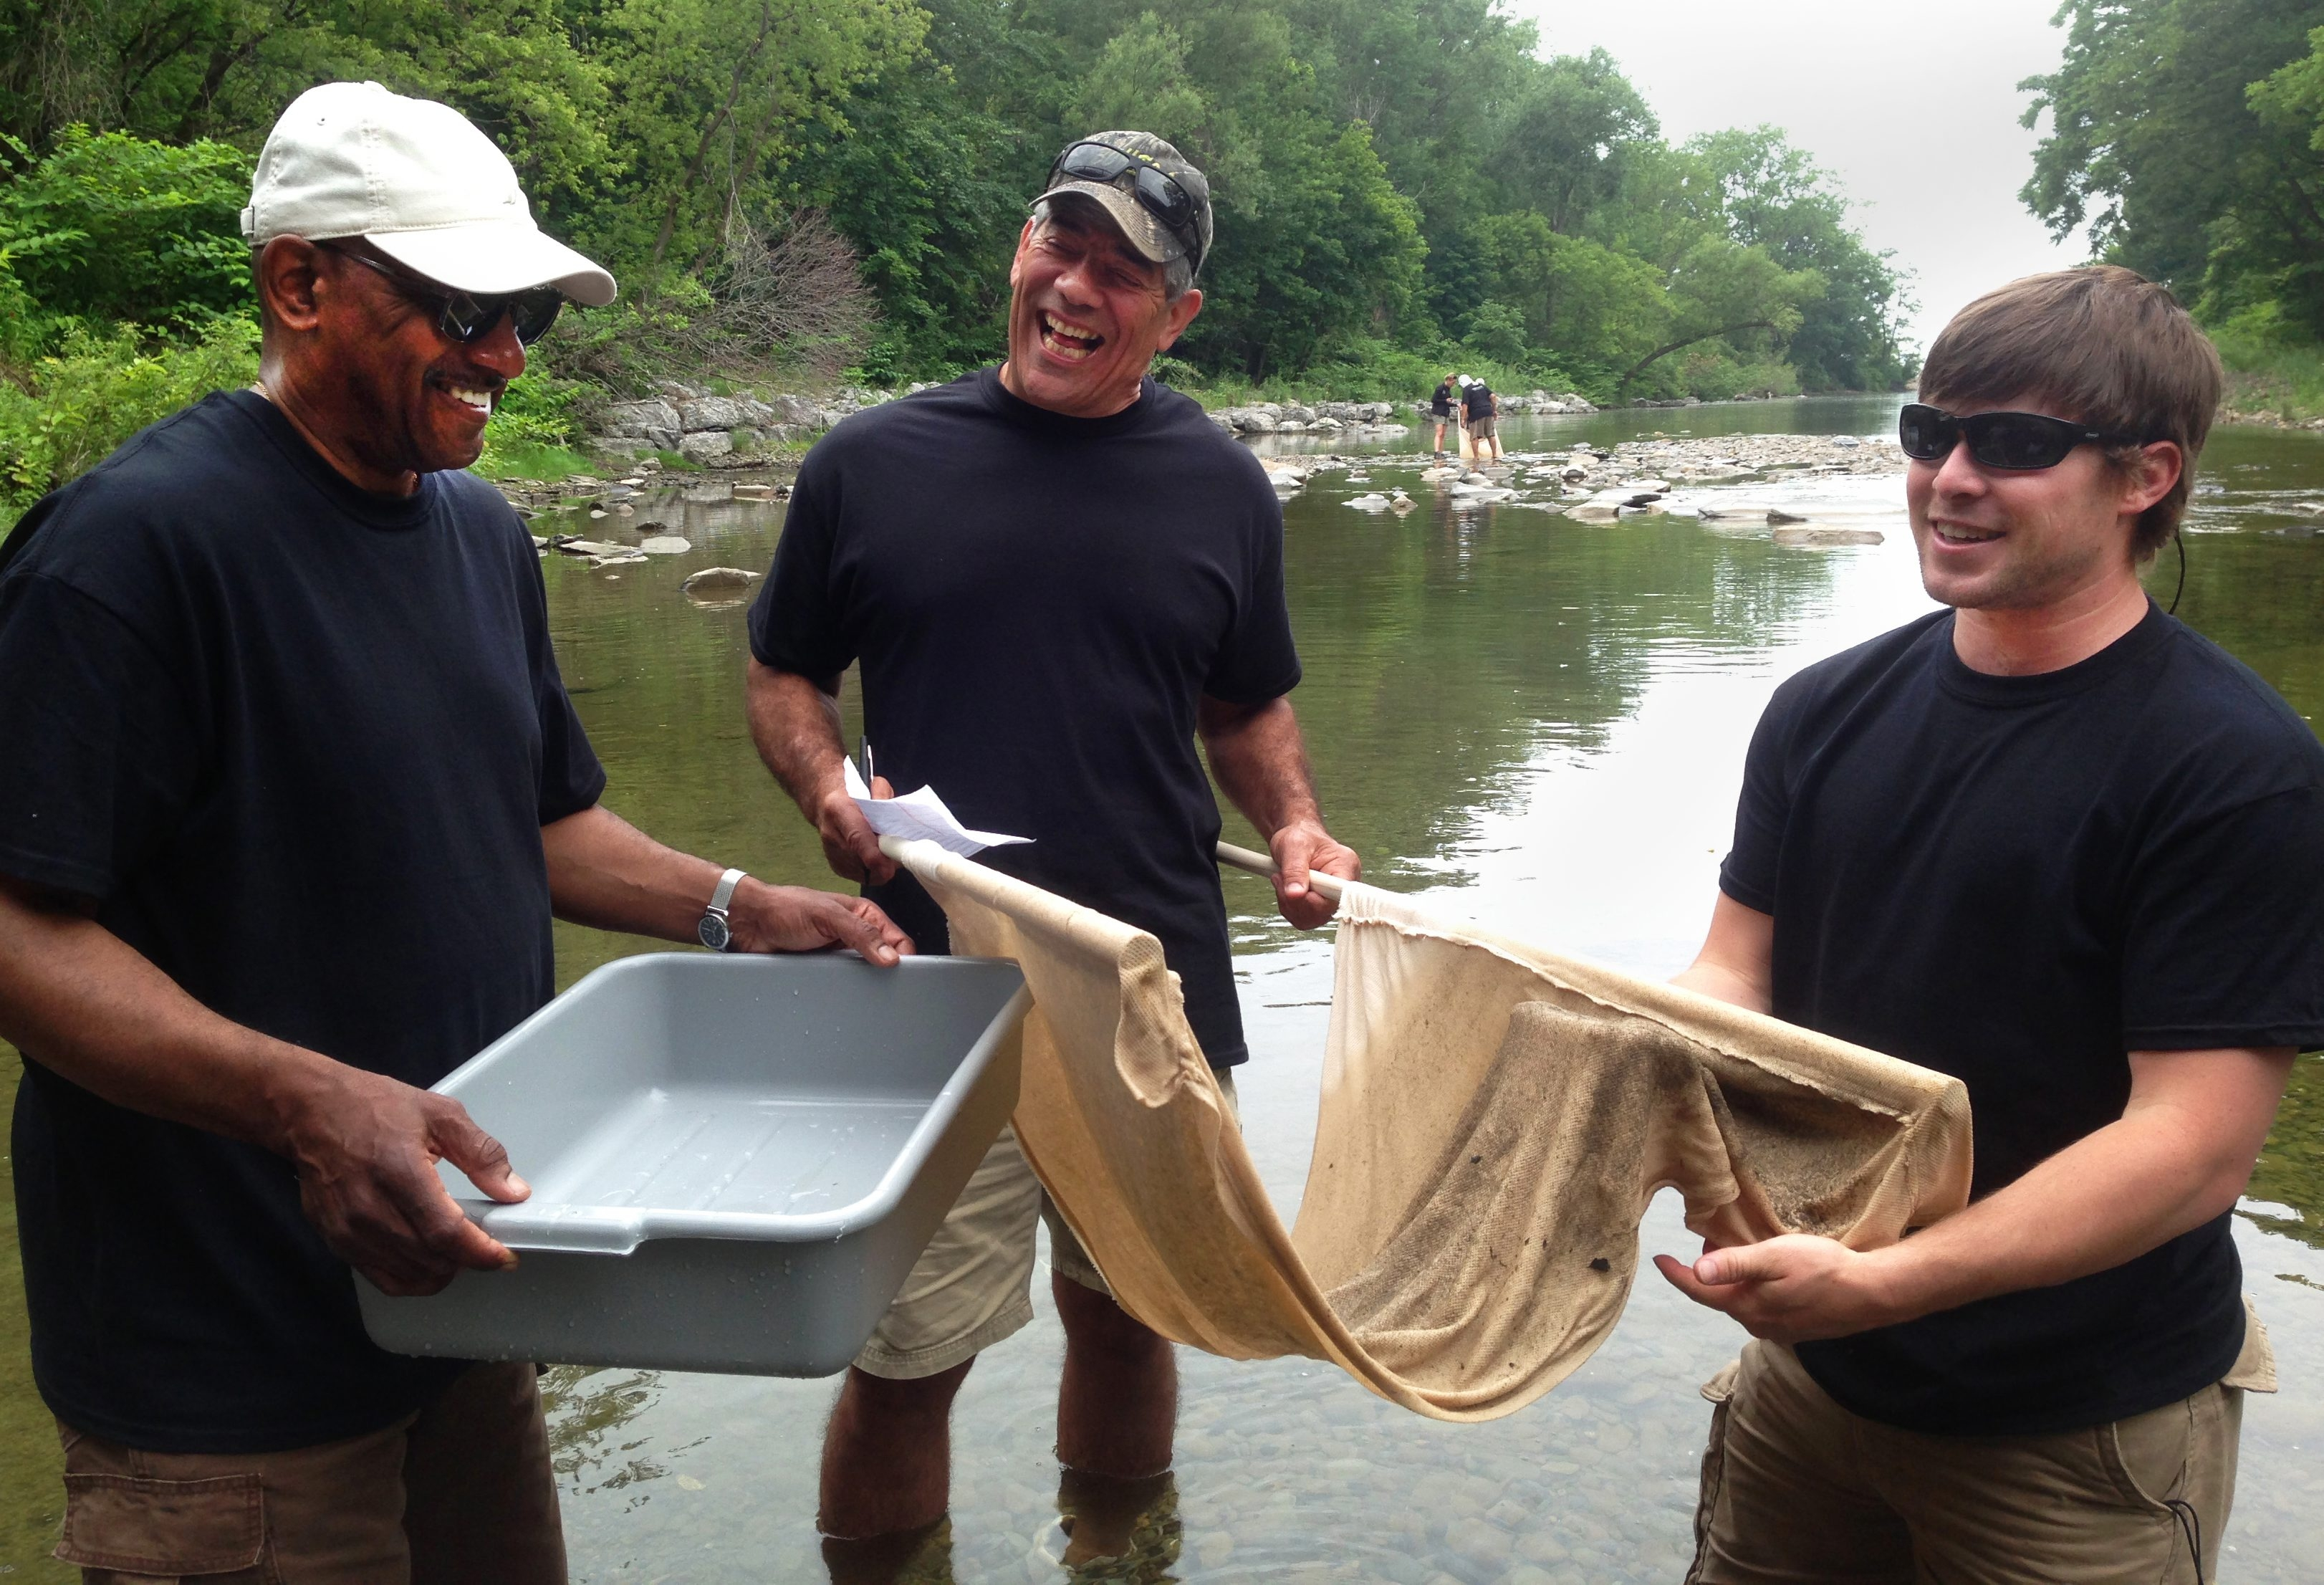 Dr. Carl Williams, Willie Morales and Derek Jon Conant seine a stream to check for insect life and water quality. Conservation projects are undertaken by a variety of area organizations.